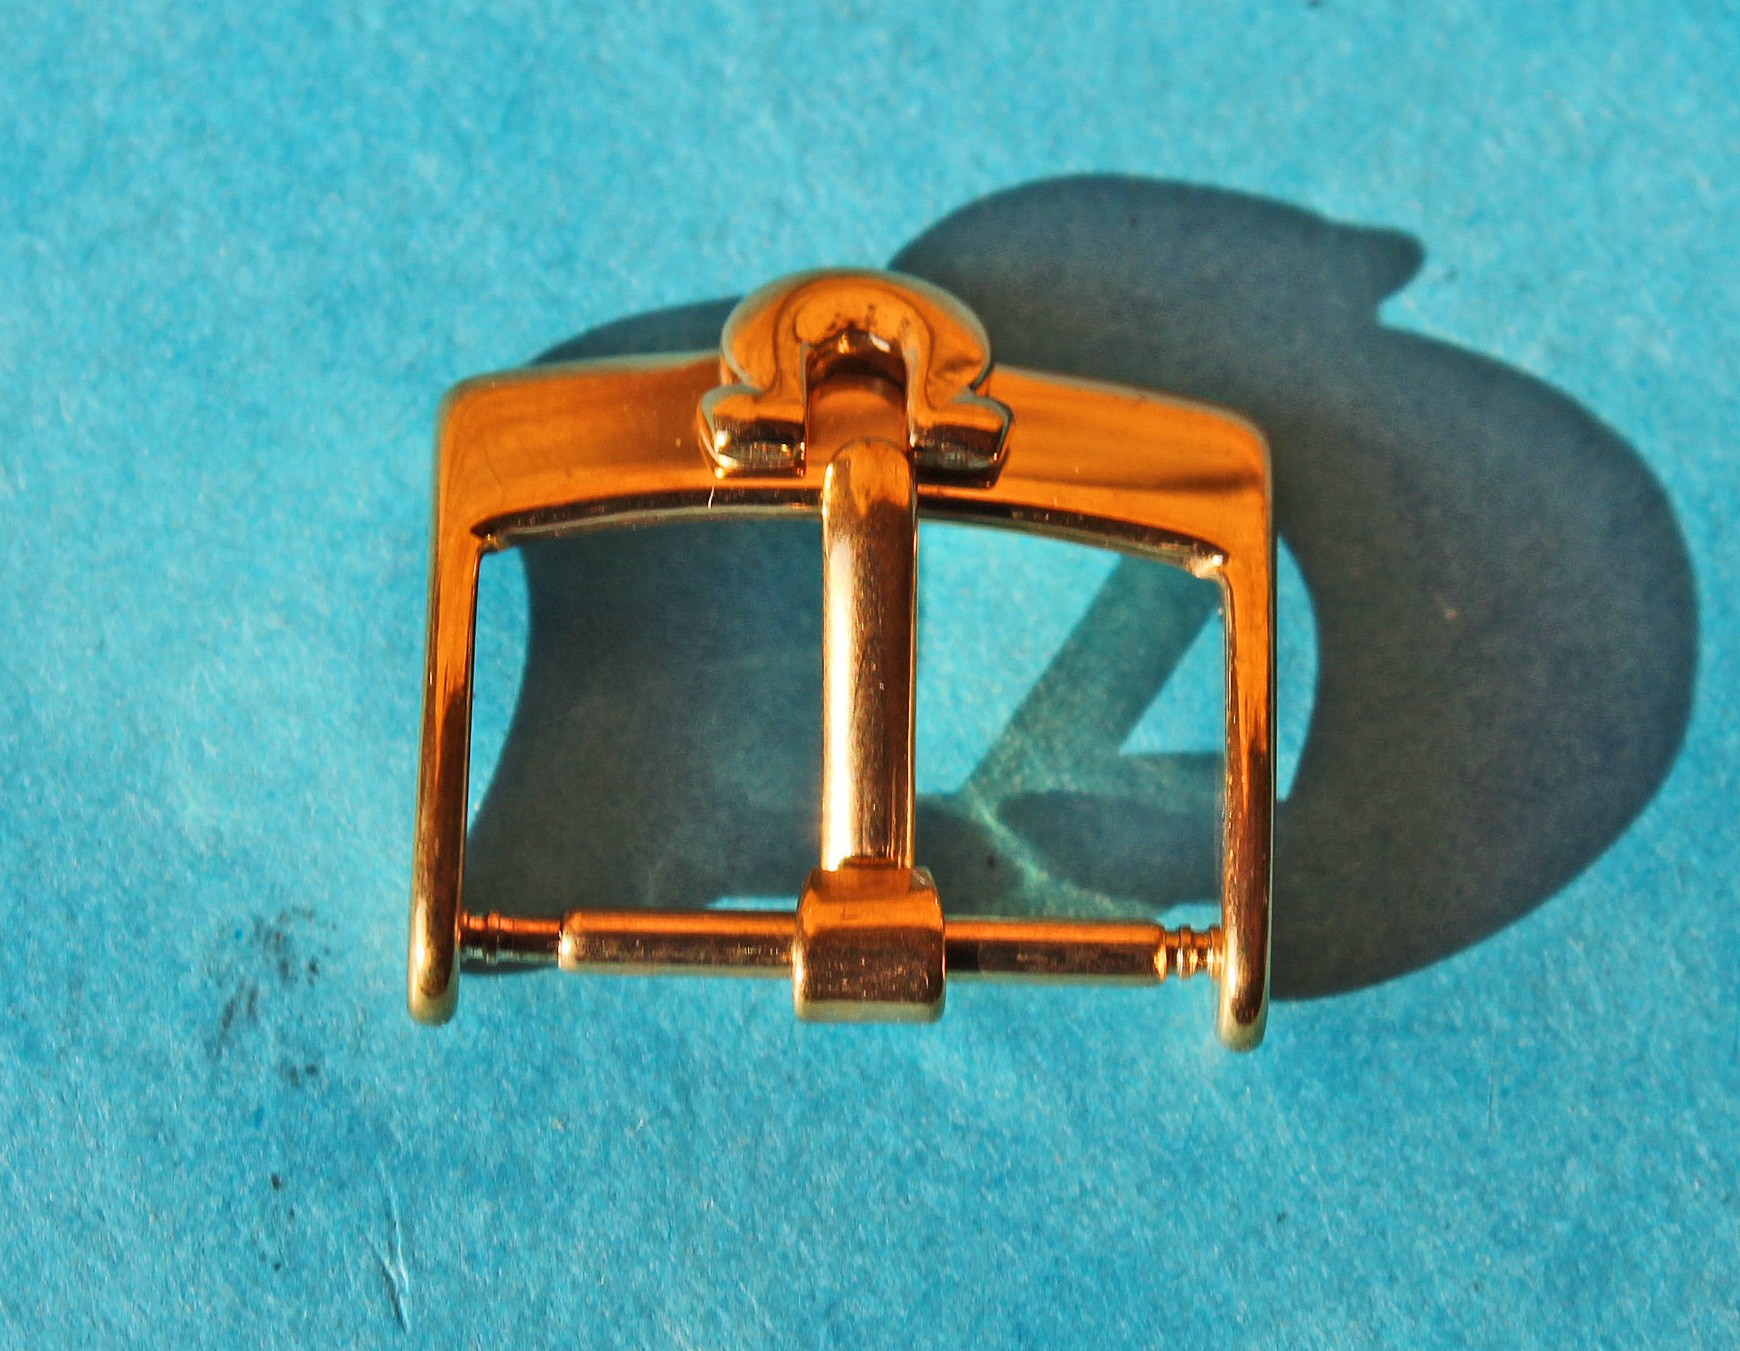 70's WRIST WATCH OMEGA BIG LOGO STRAP BAND BUCKLE 16MM GOLD PLATED